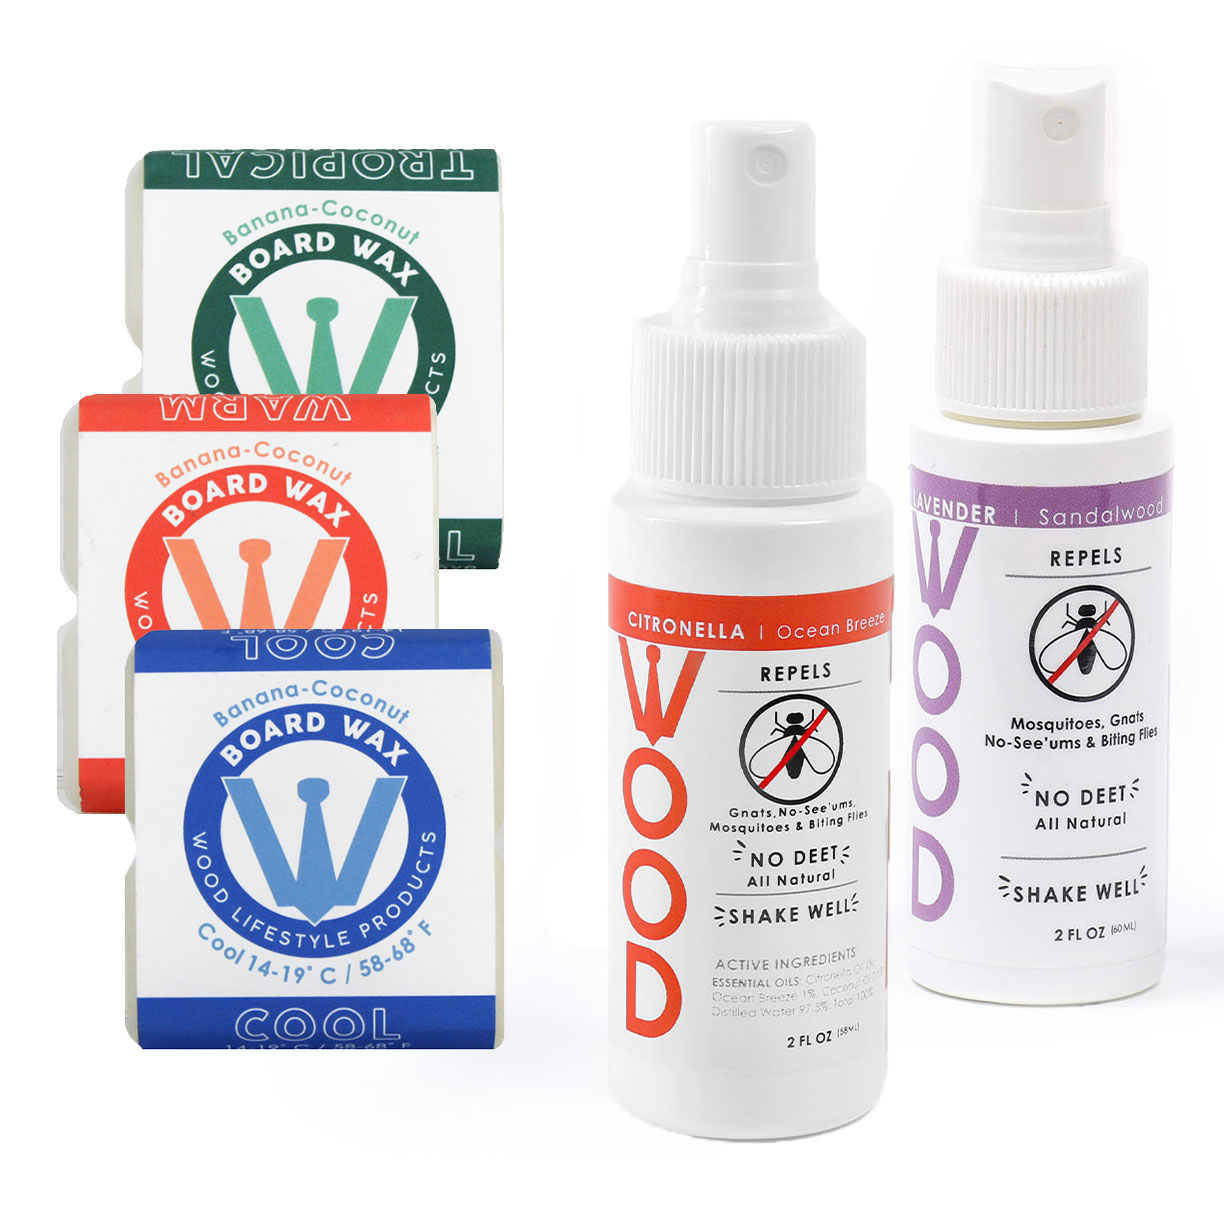 Citronella Insect Repellent | Wood Lifestyle Products